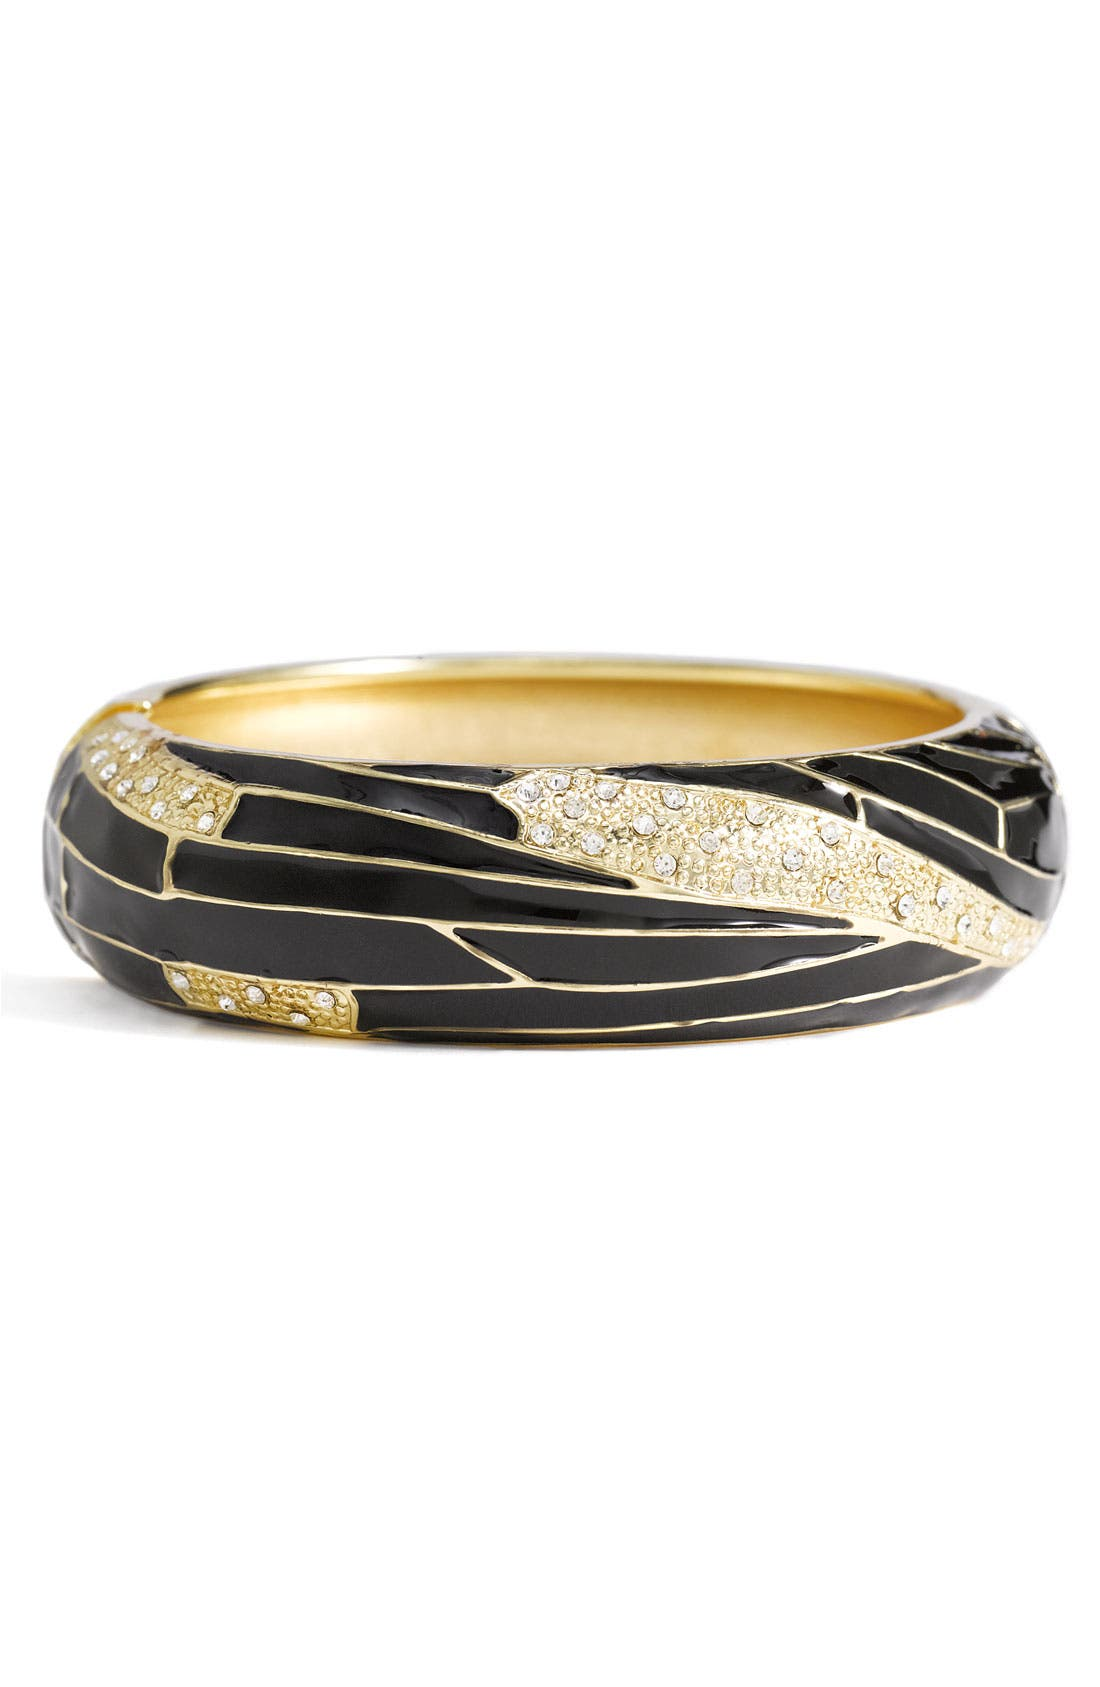 Large Insect Wing Enamel Bangle,                             Main thumbnail 1, color,                             001